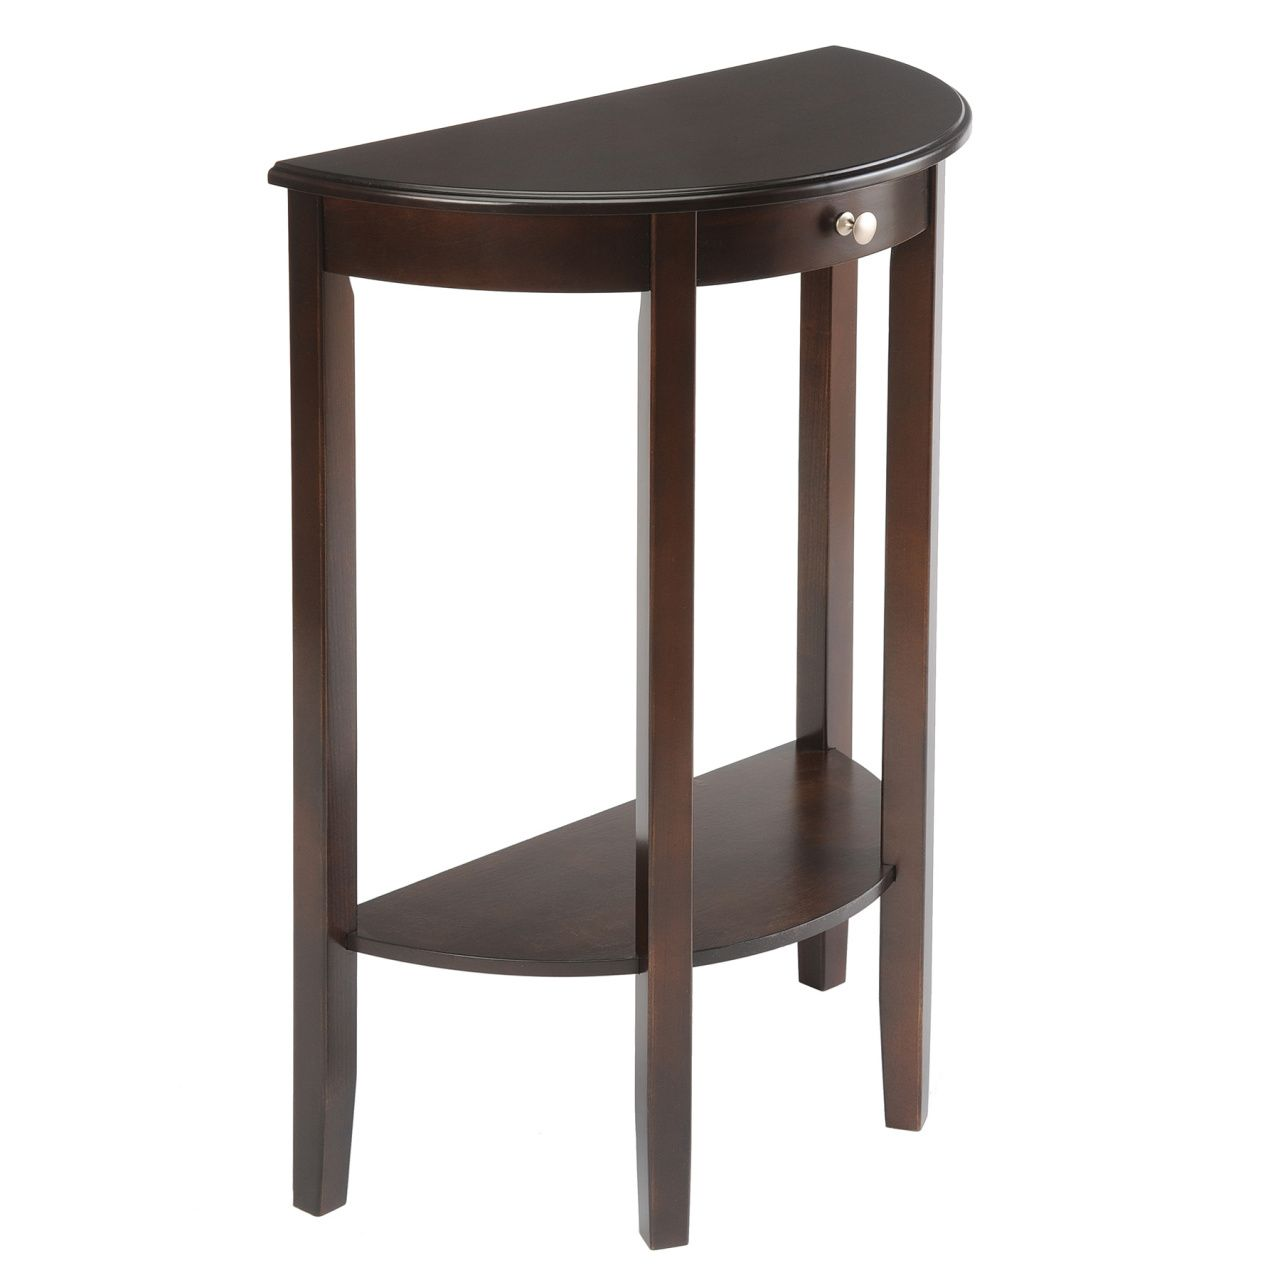 Small Half Circle Table Real Wood Home Office Furniture